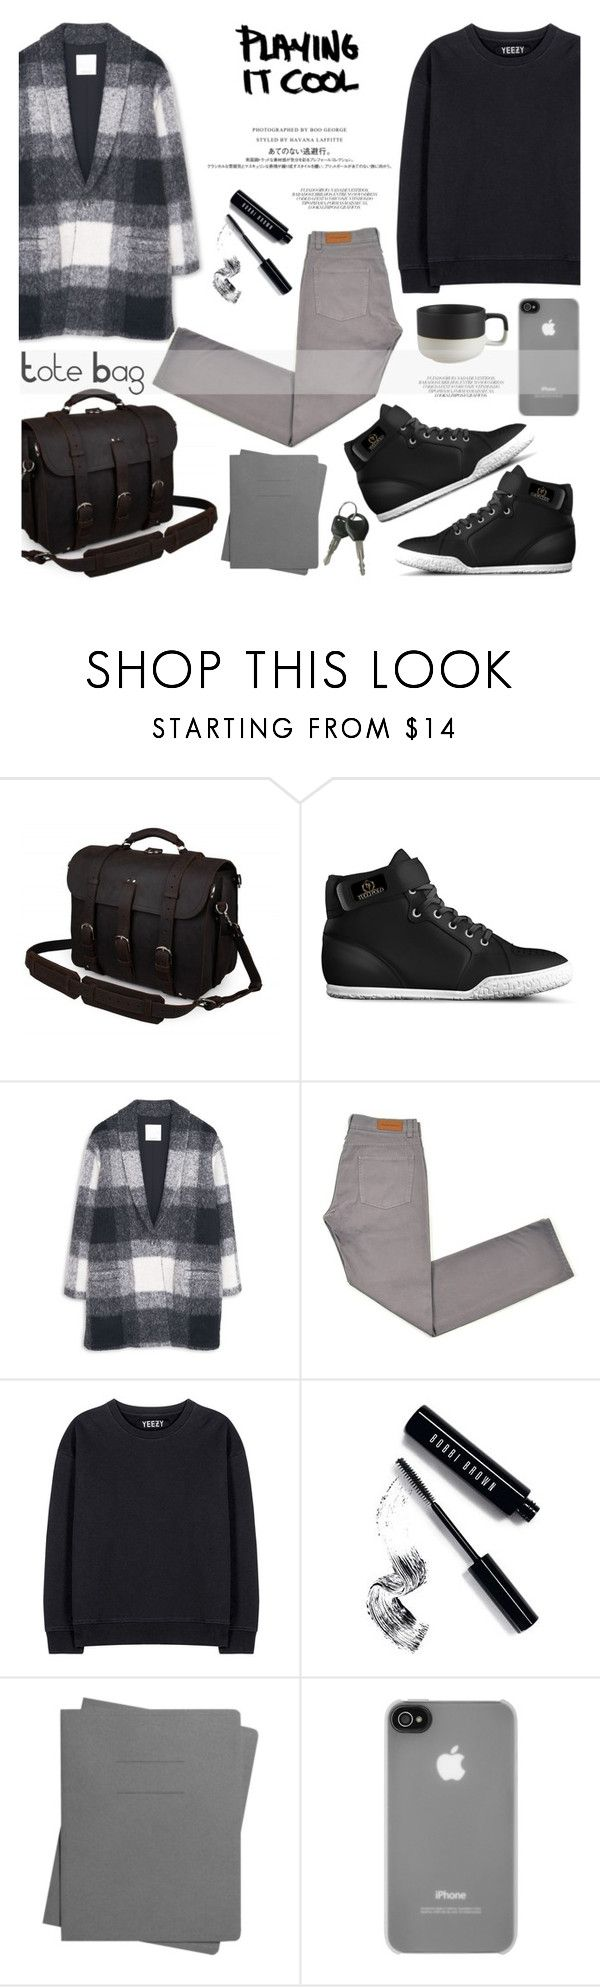 """Tote Bags"" by tuccipolo ❤ liked on Polyvore featuring MANGO, Sixpack France, adidas Originals, Bobbi Brown Cosmetics, Shinola, Incase, CB2, women's clothing, women and female"